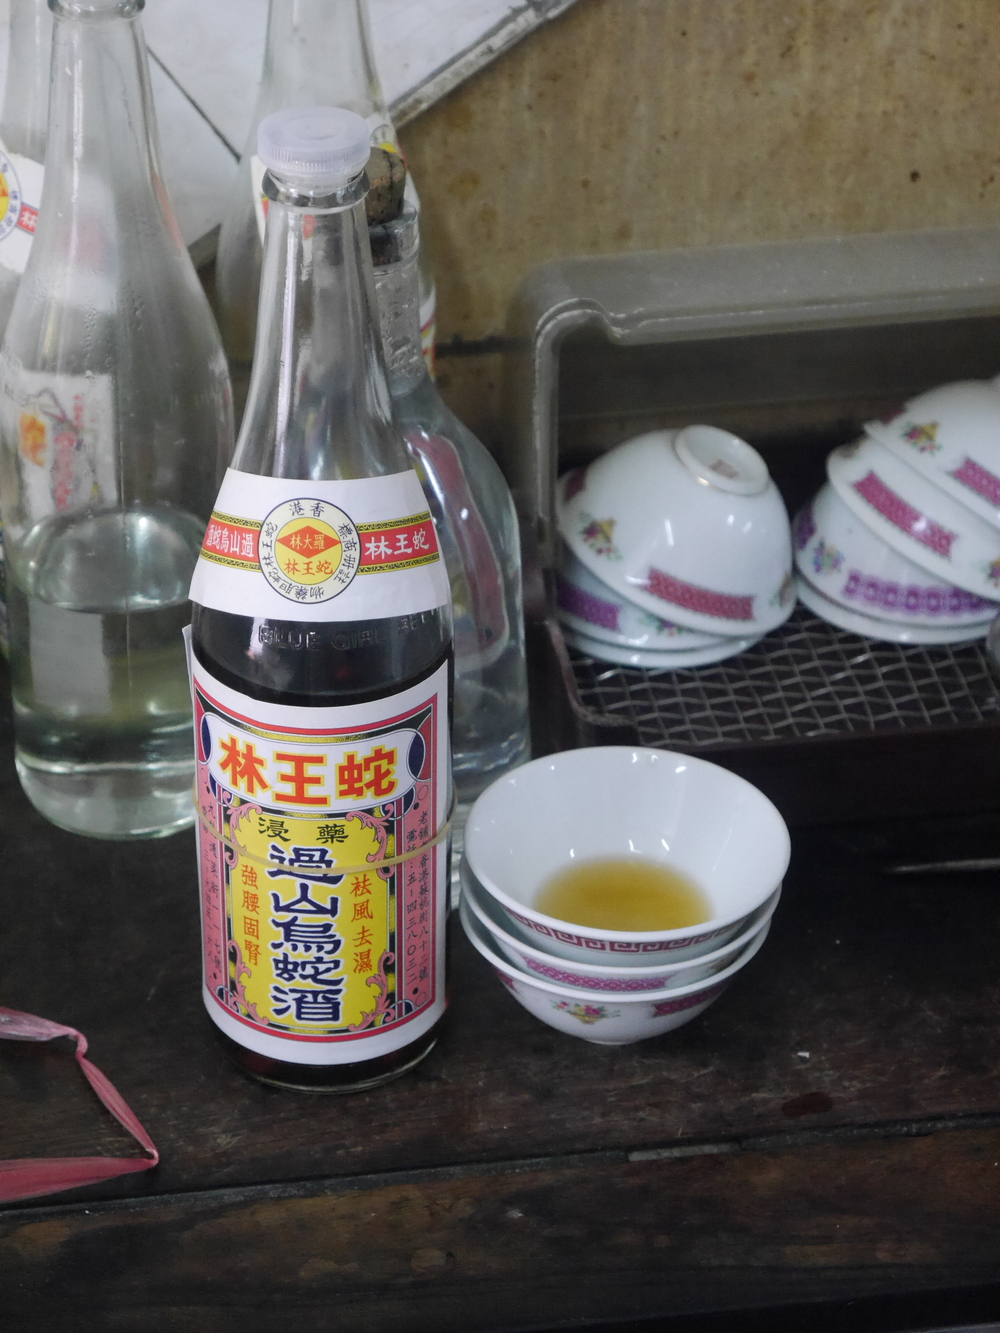 The snake wine we tried.